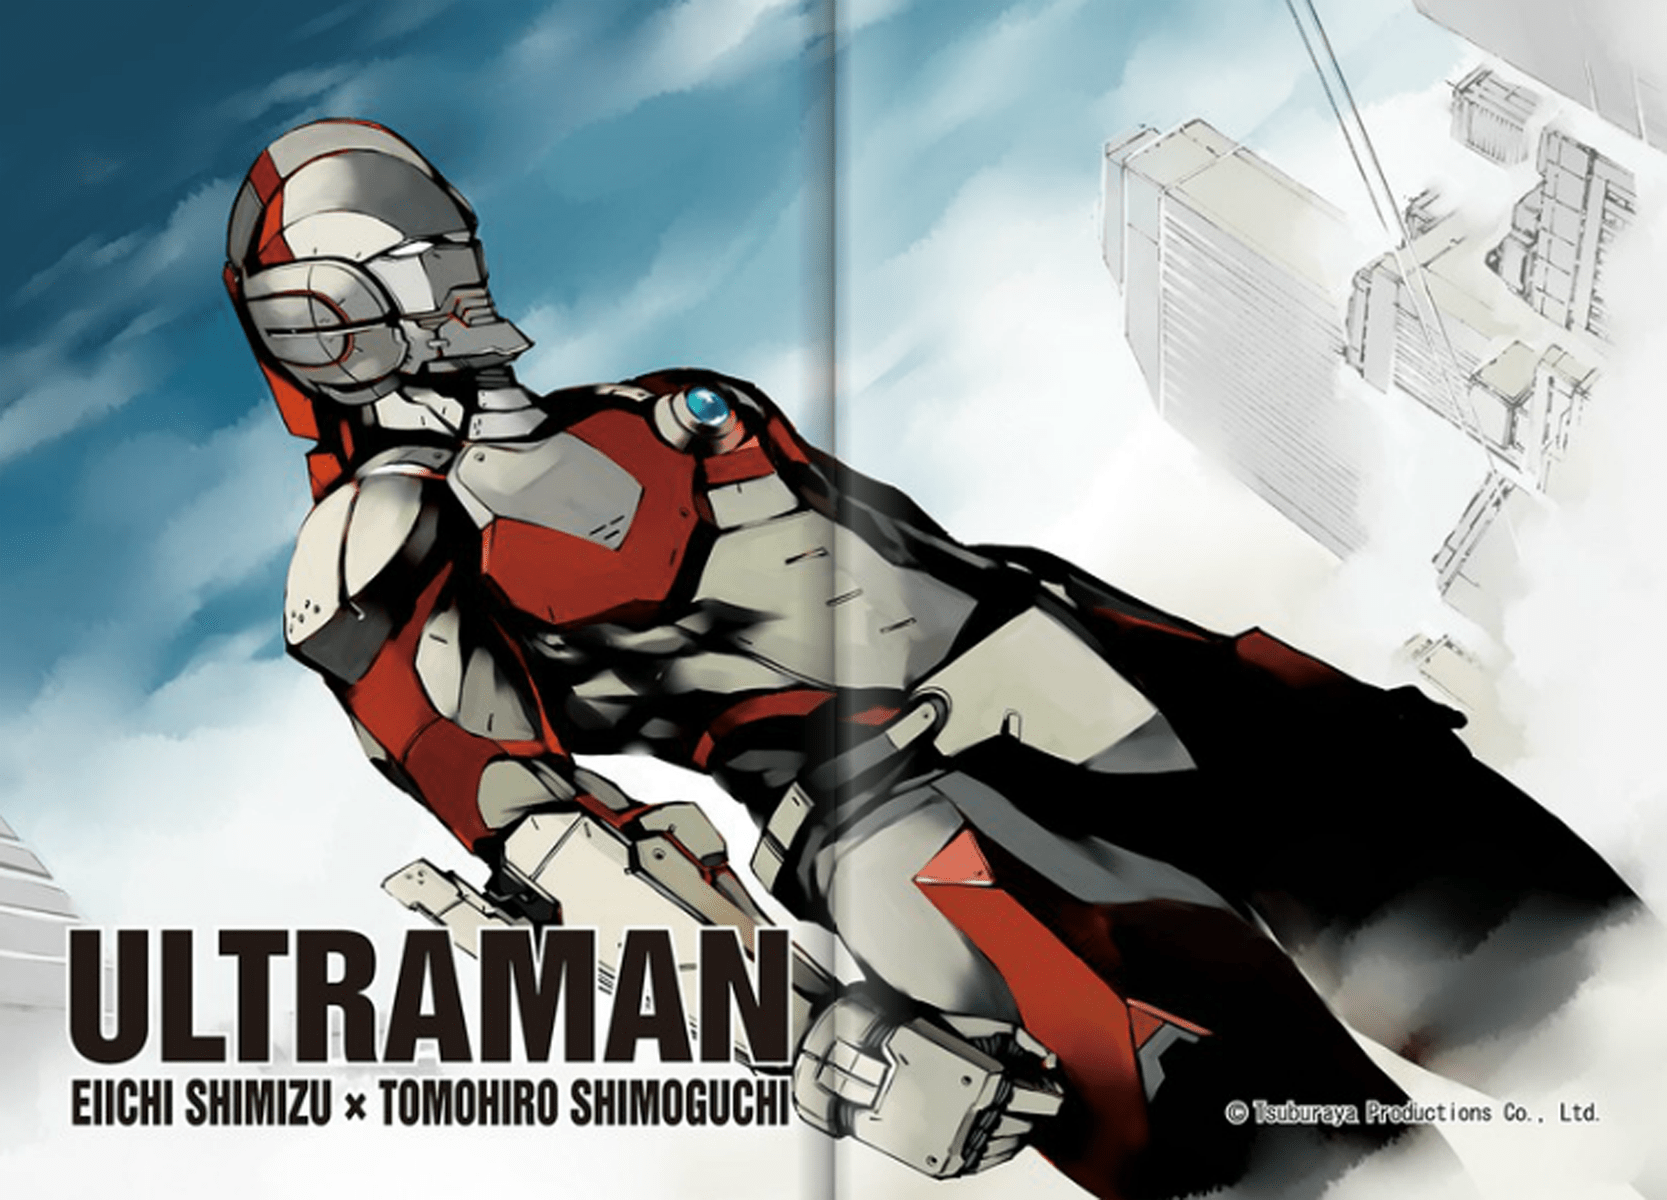 ULTRAMAN Manga to Release an 'Important Announcement' on December 1st